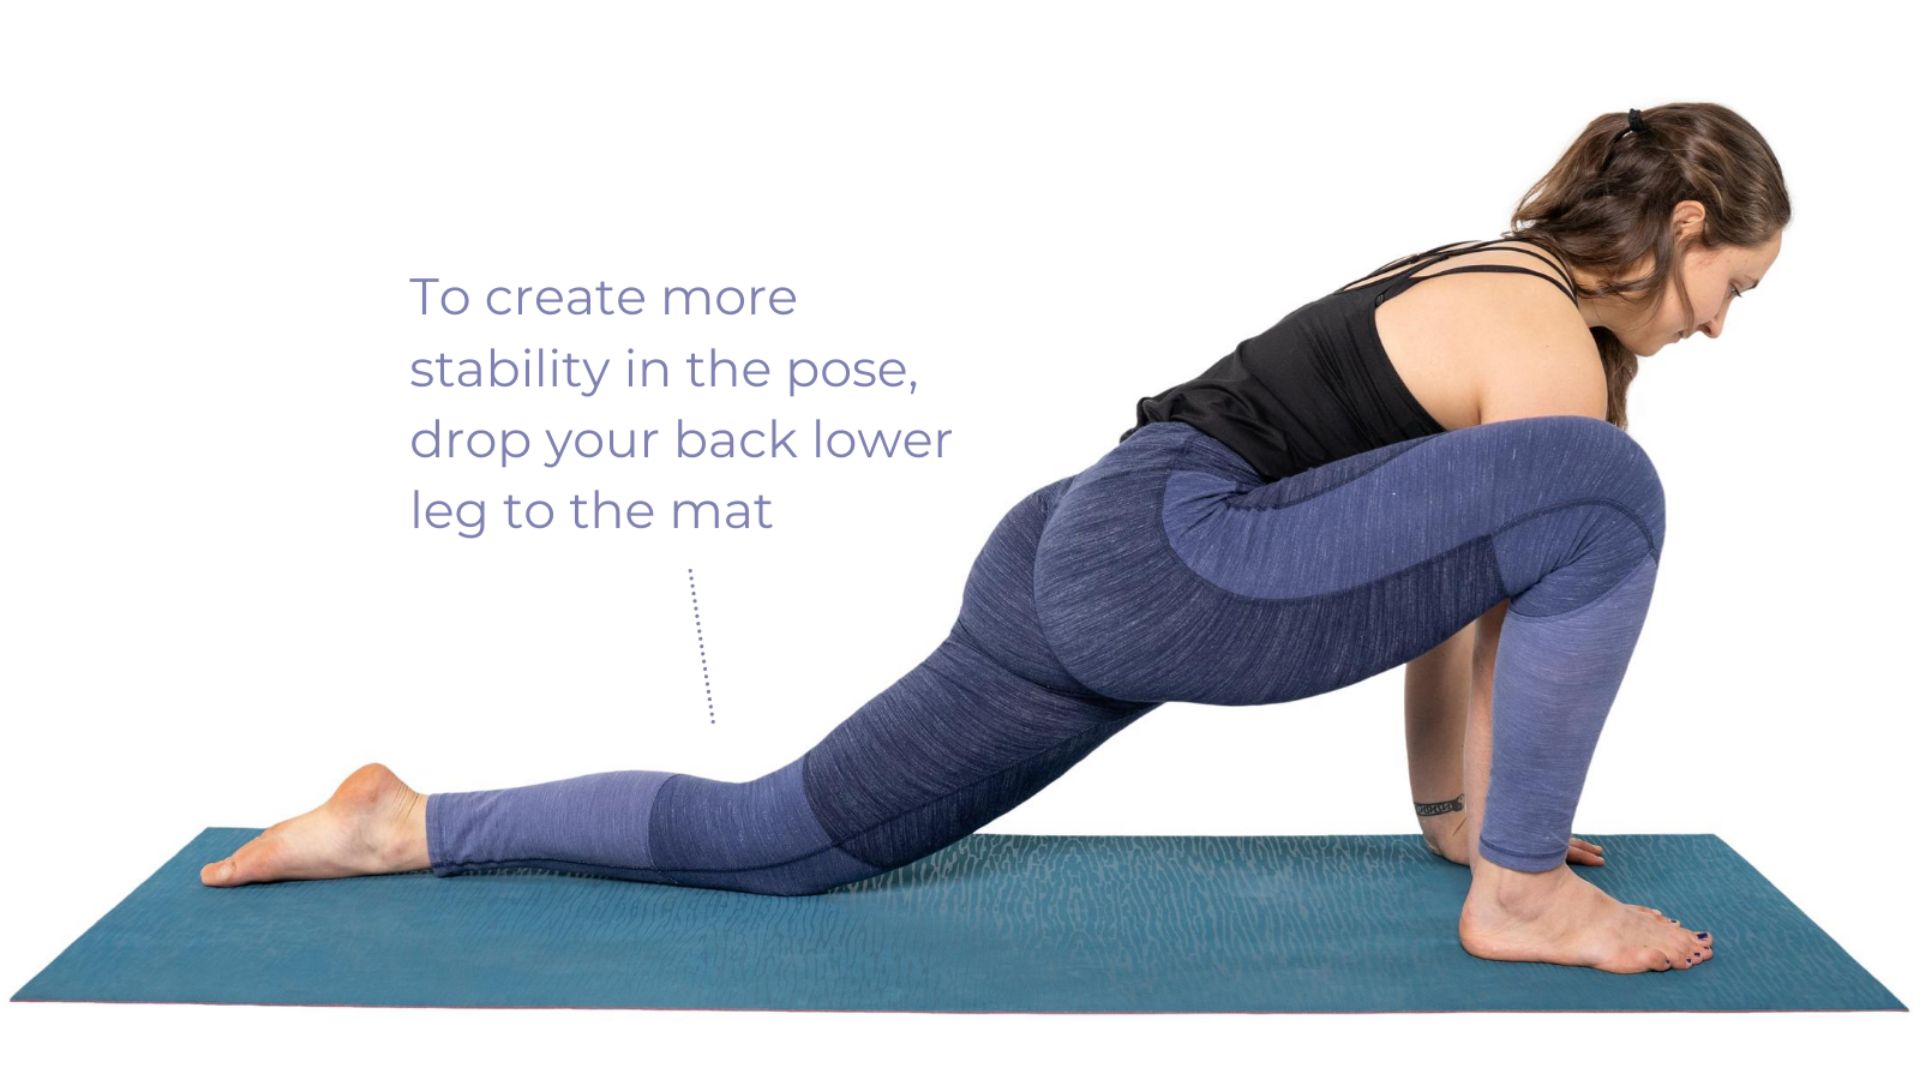 The benefits of practicing Lizard Pose (Utthan Pristhasana) by lowering your back knee for more comfort